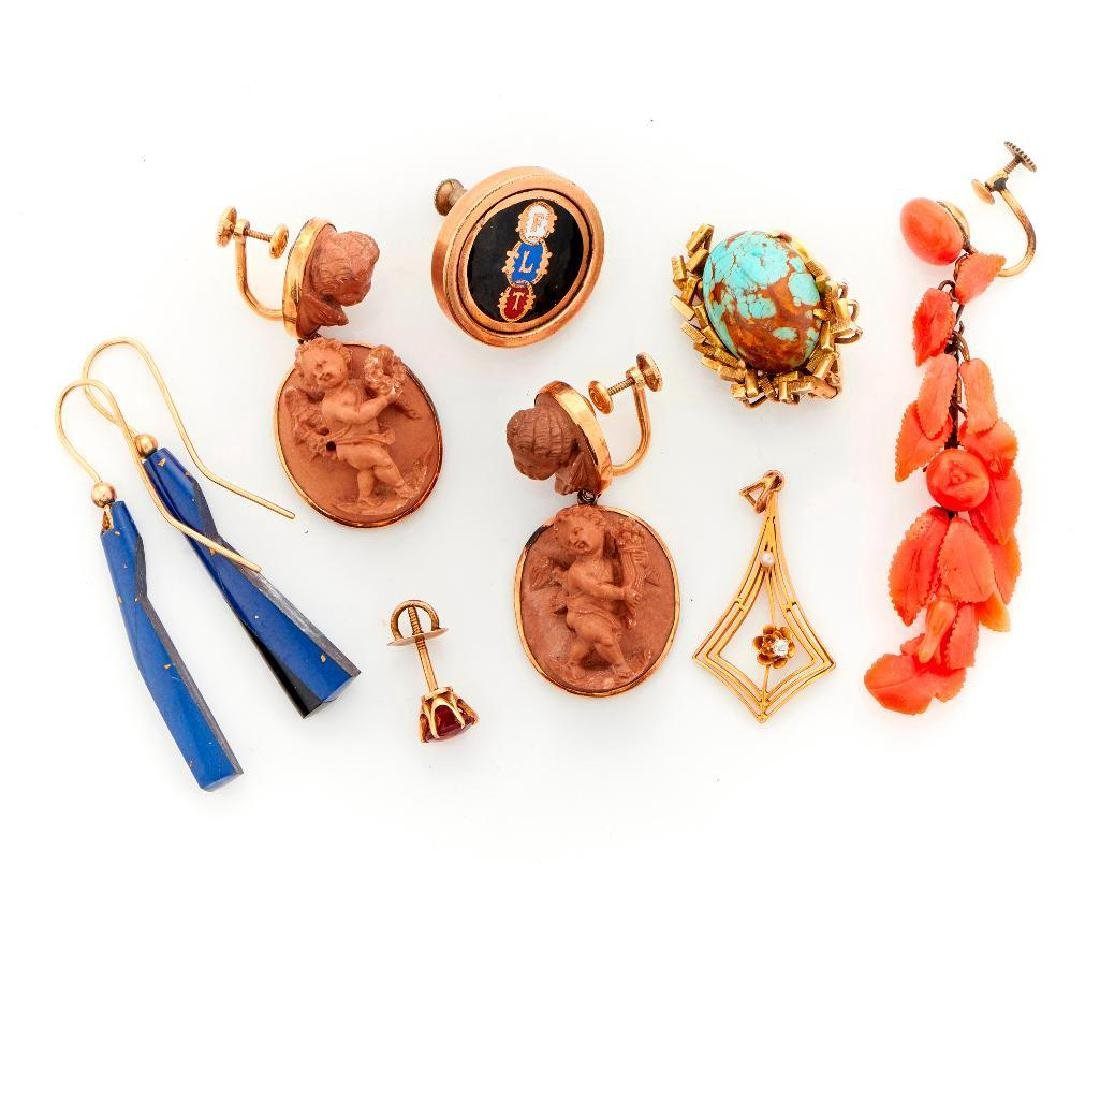 Collection of antique and vintage jewlery